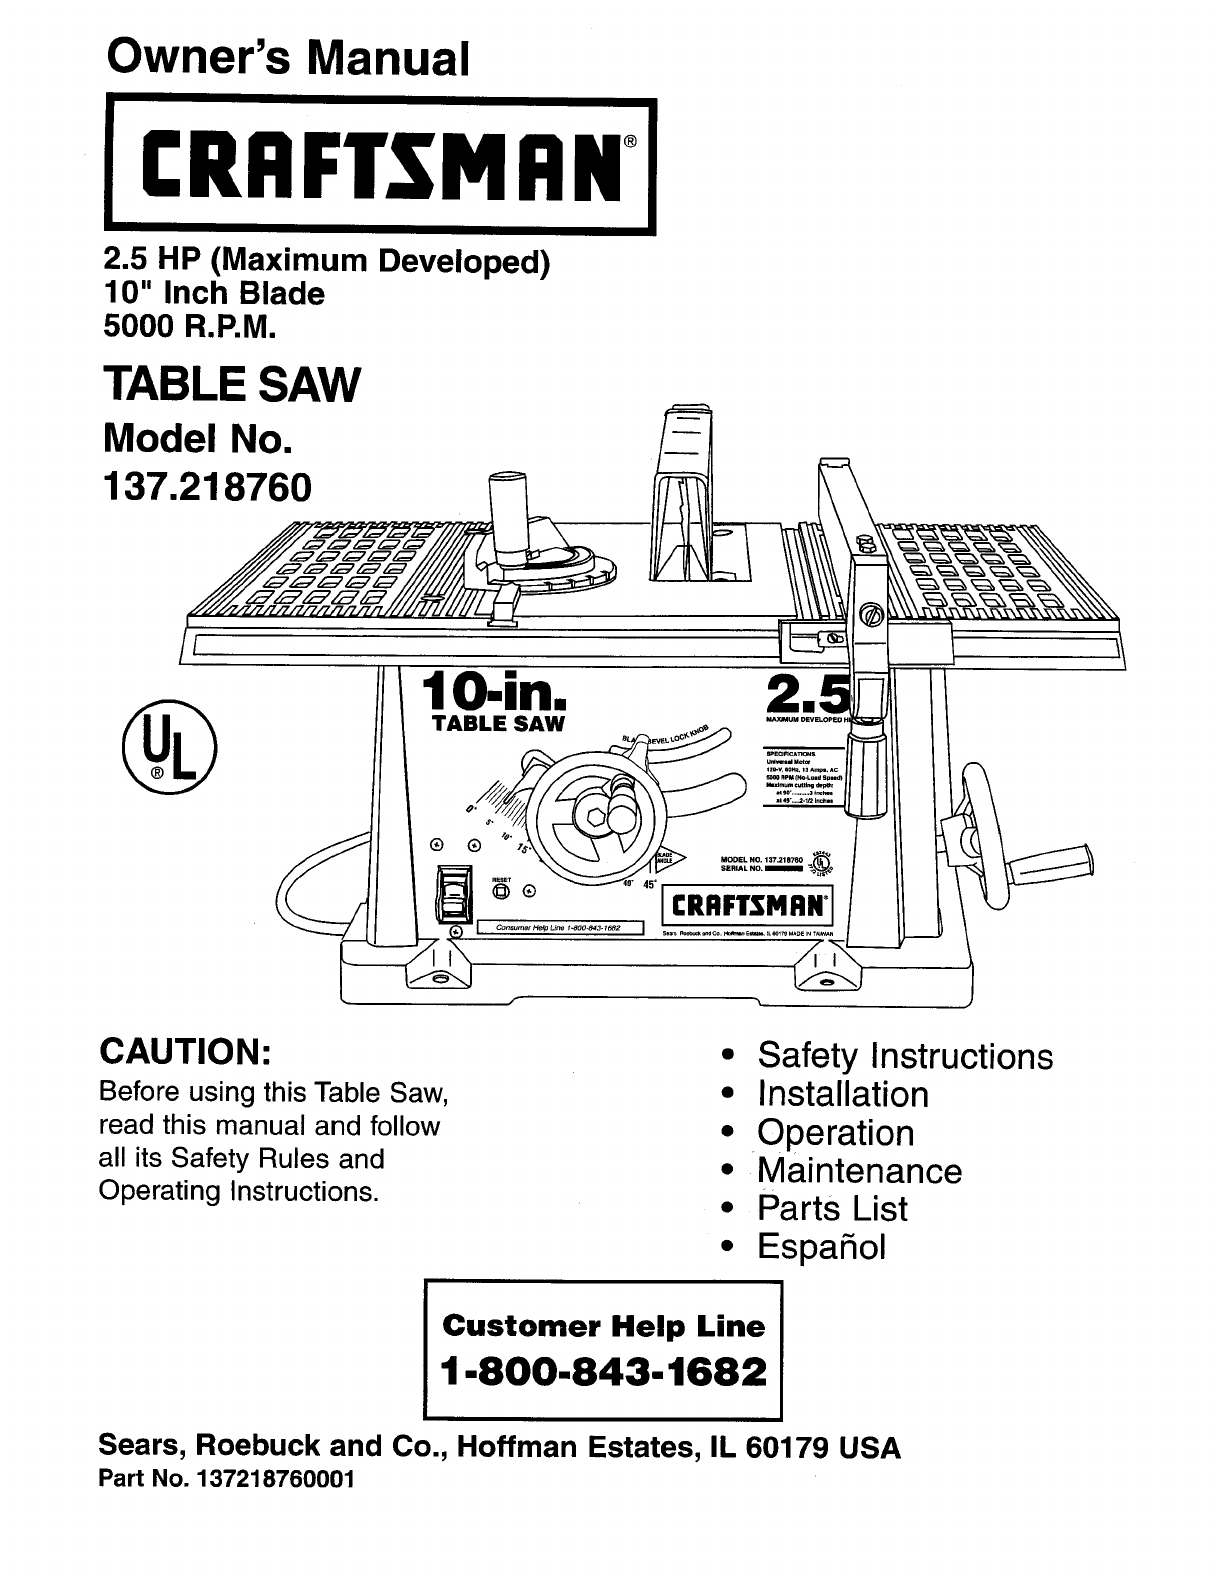 Craftsman 137218760 User Manual 10 Table Saw Manuals And Guides L0912329 Sears Switch Wiring Diagram